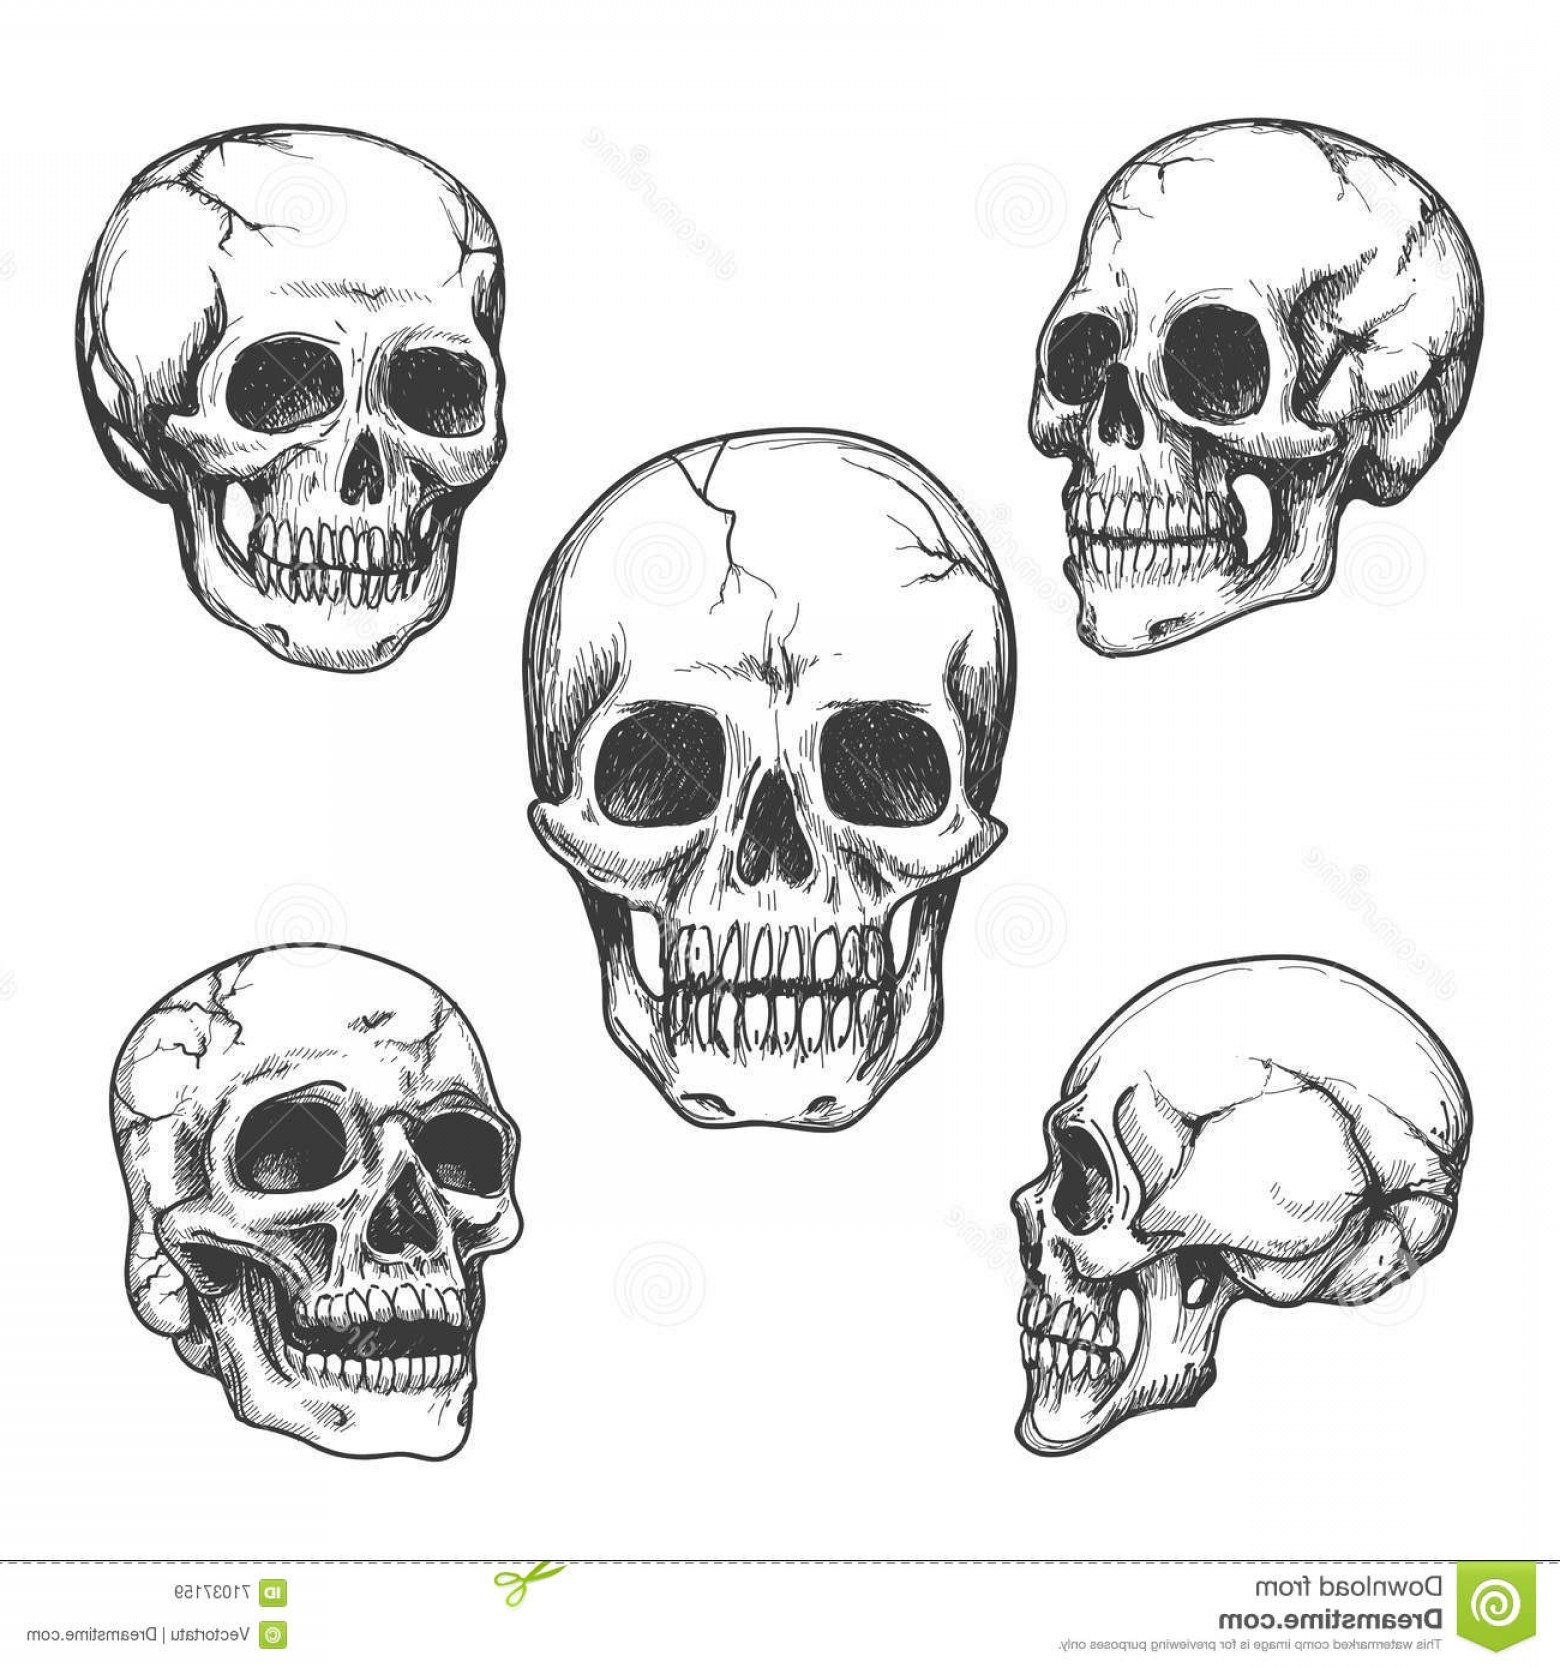 His And Hers Skulls Vector: Stock Illustration Hand Drawn Skulls Skull Vector Illustrations Set Image